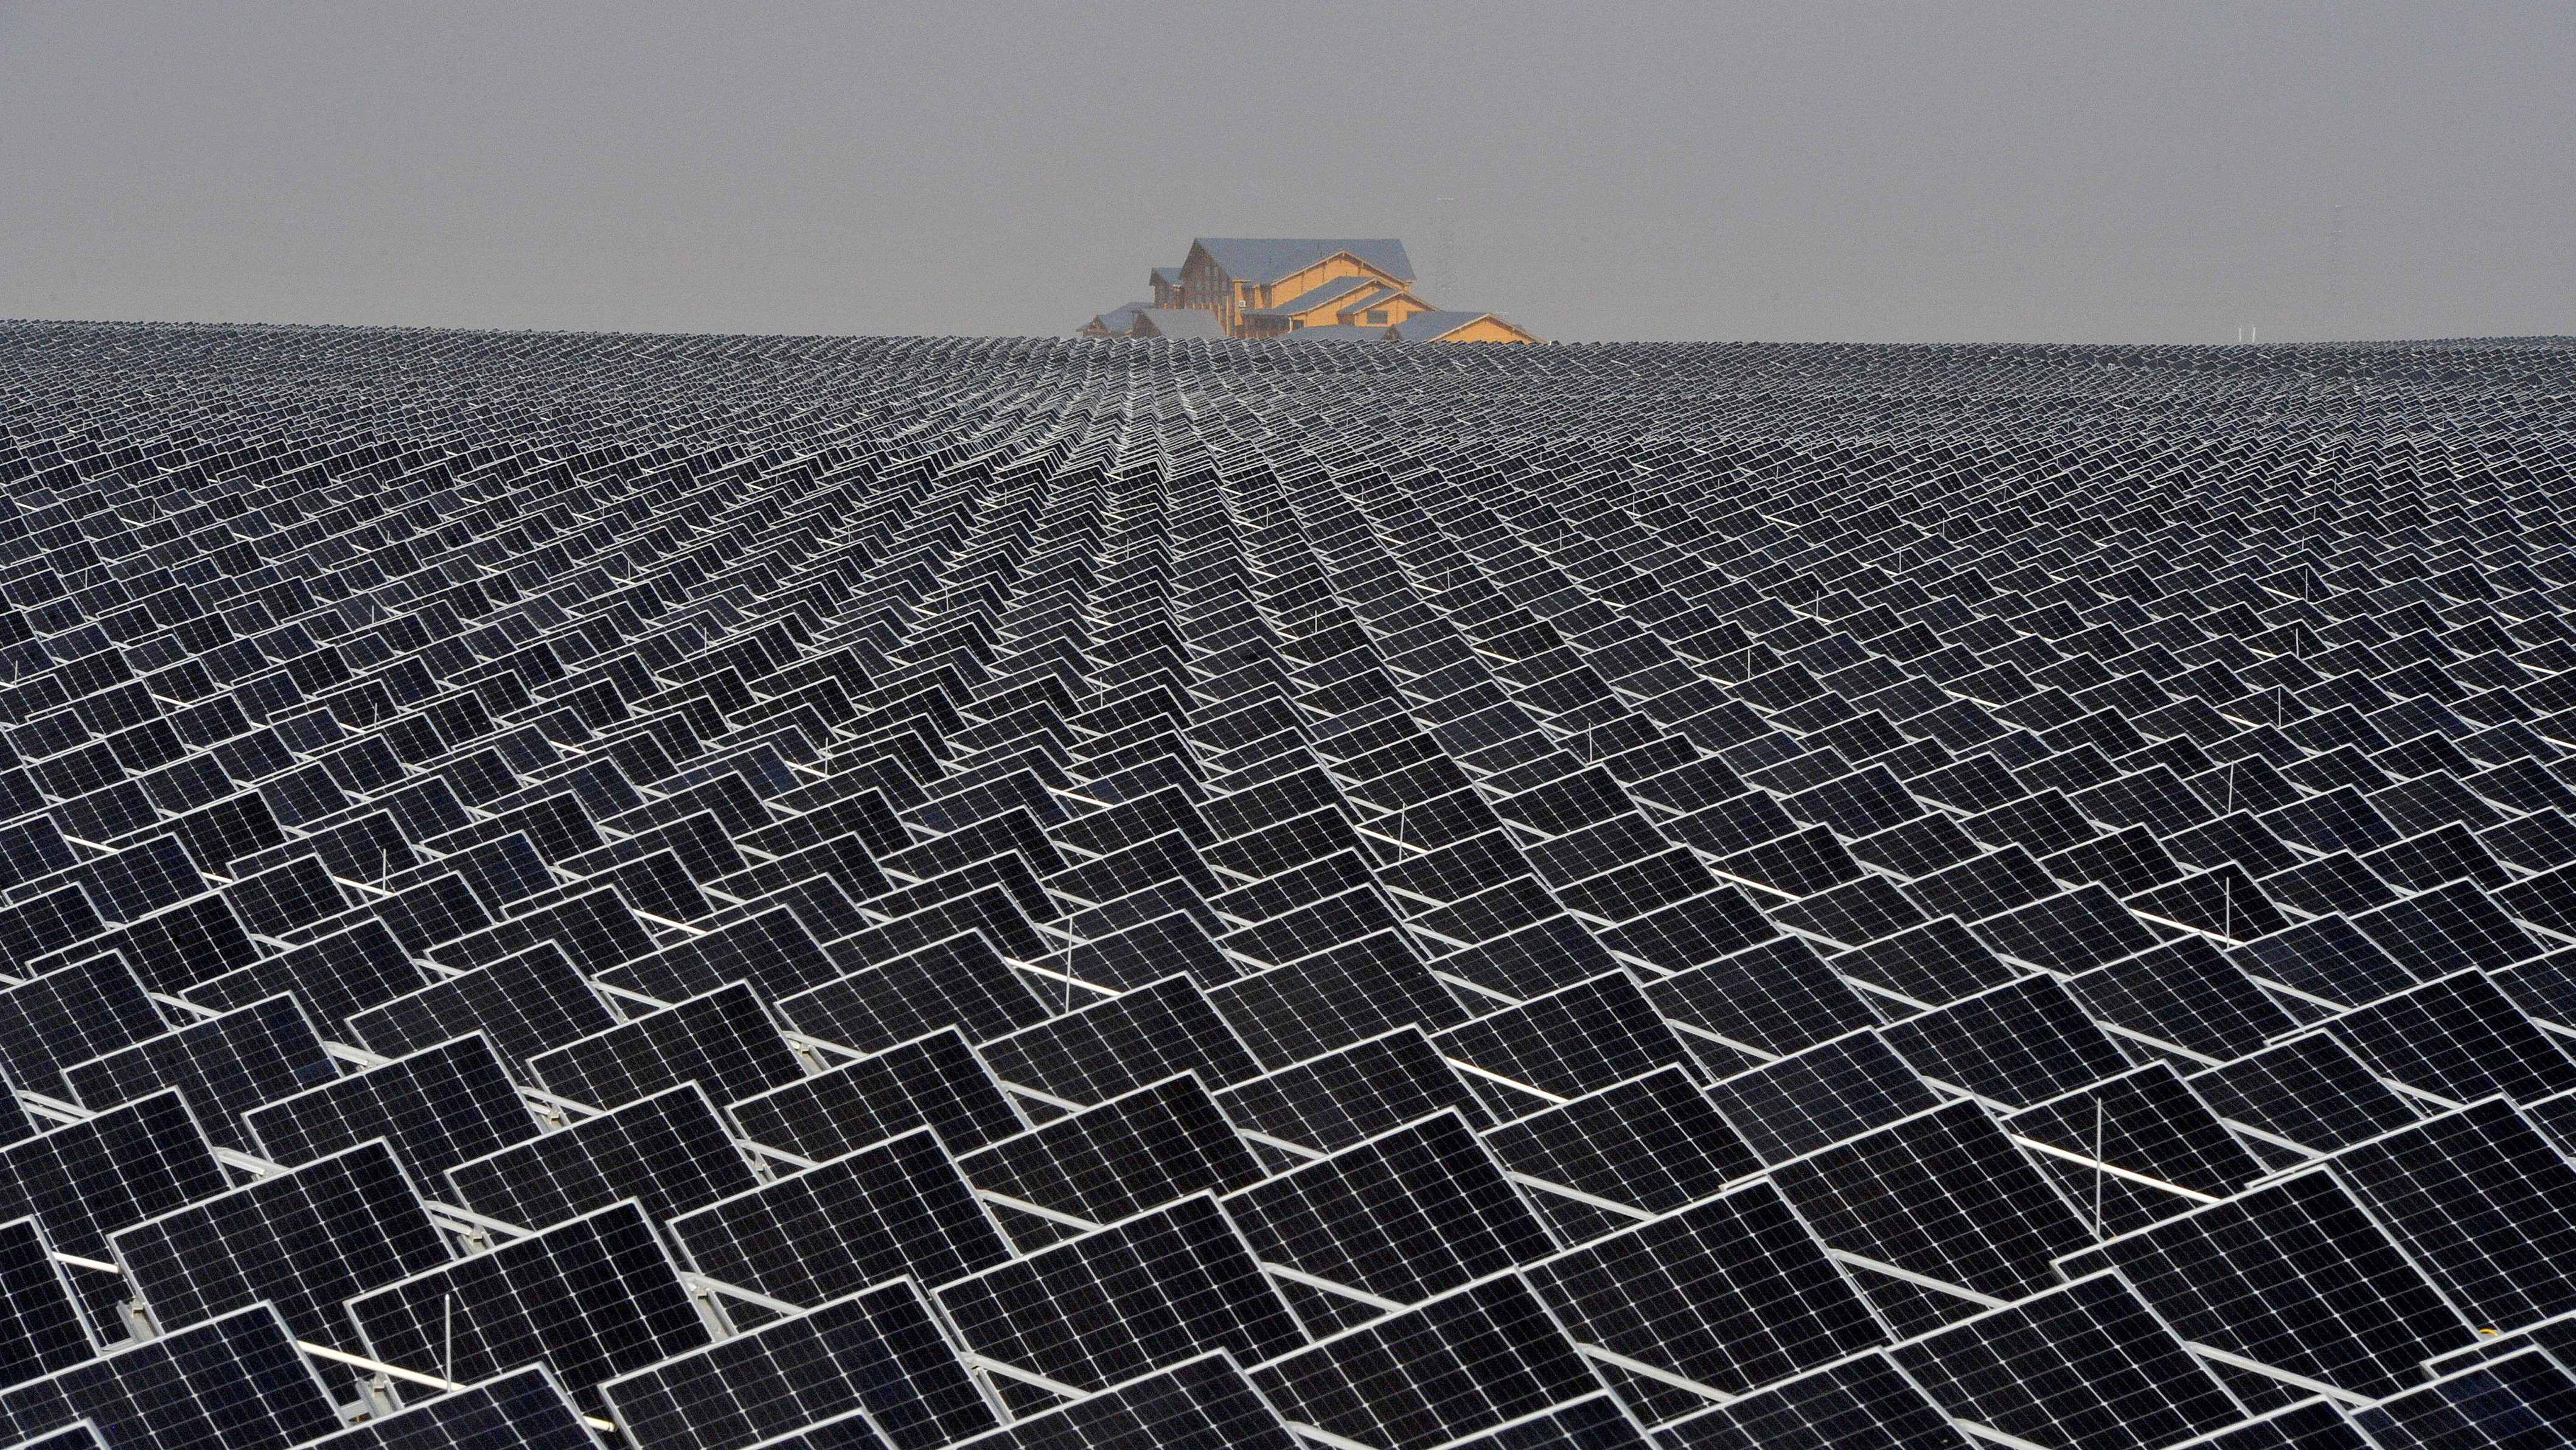 4 Ways to Get Projects Done in a World With Solar Tariffs